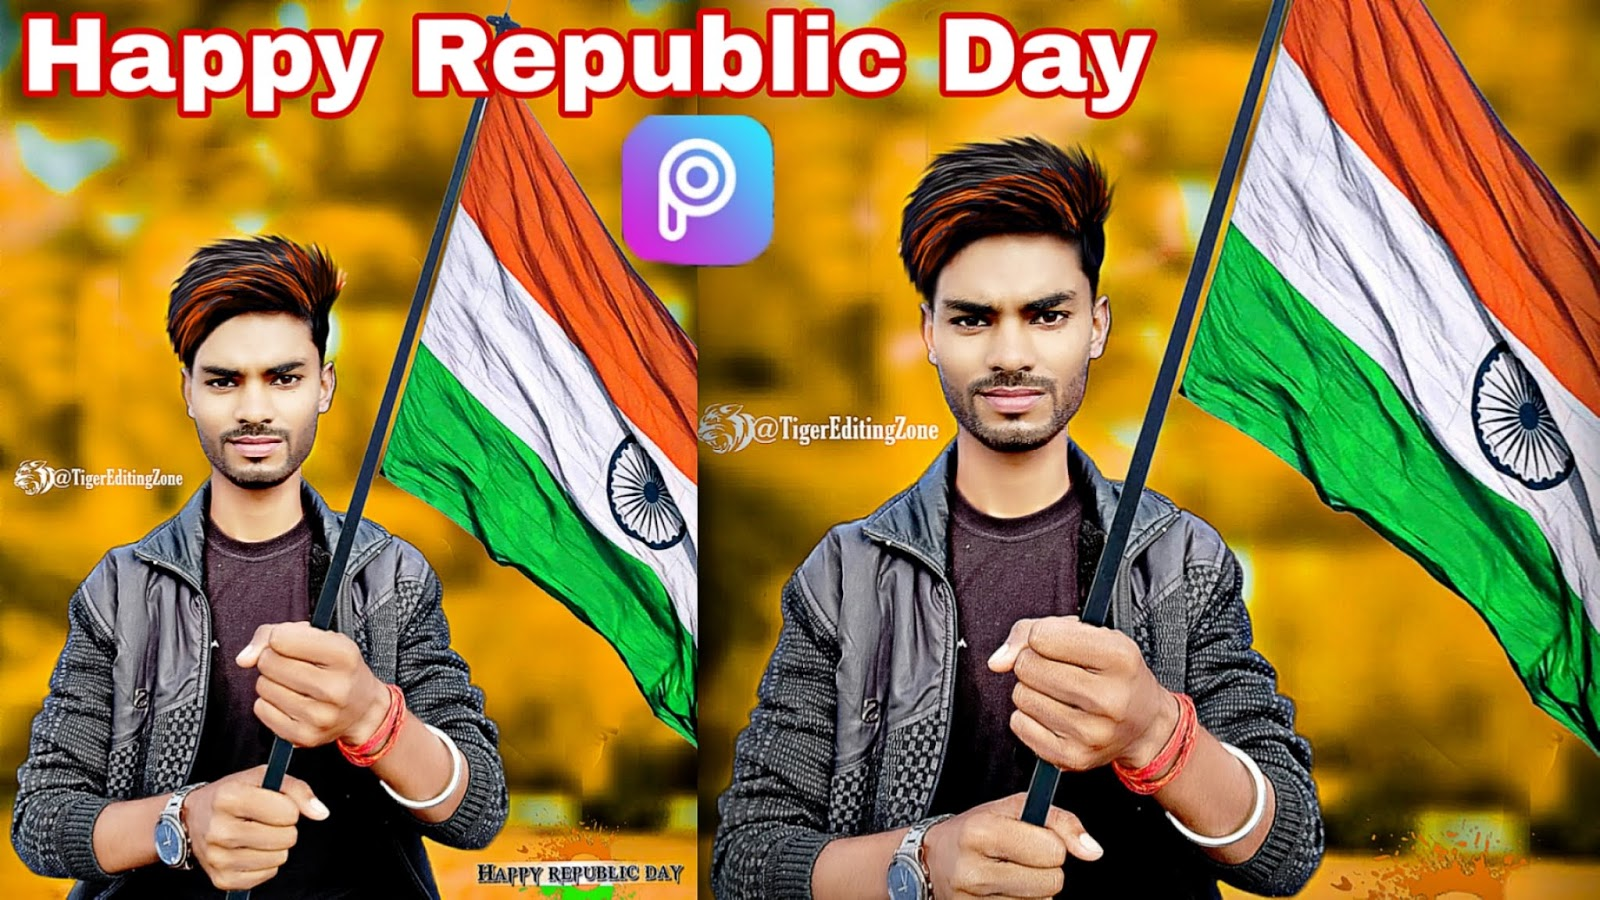 26 January (Republic day) Special Photo Editing in PicsArt